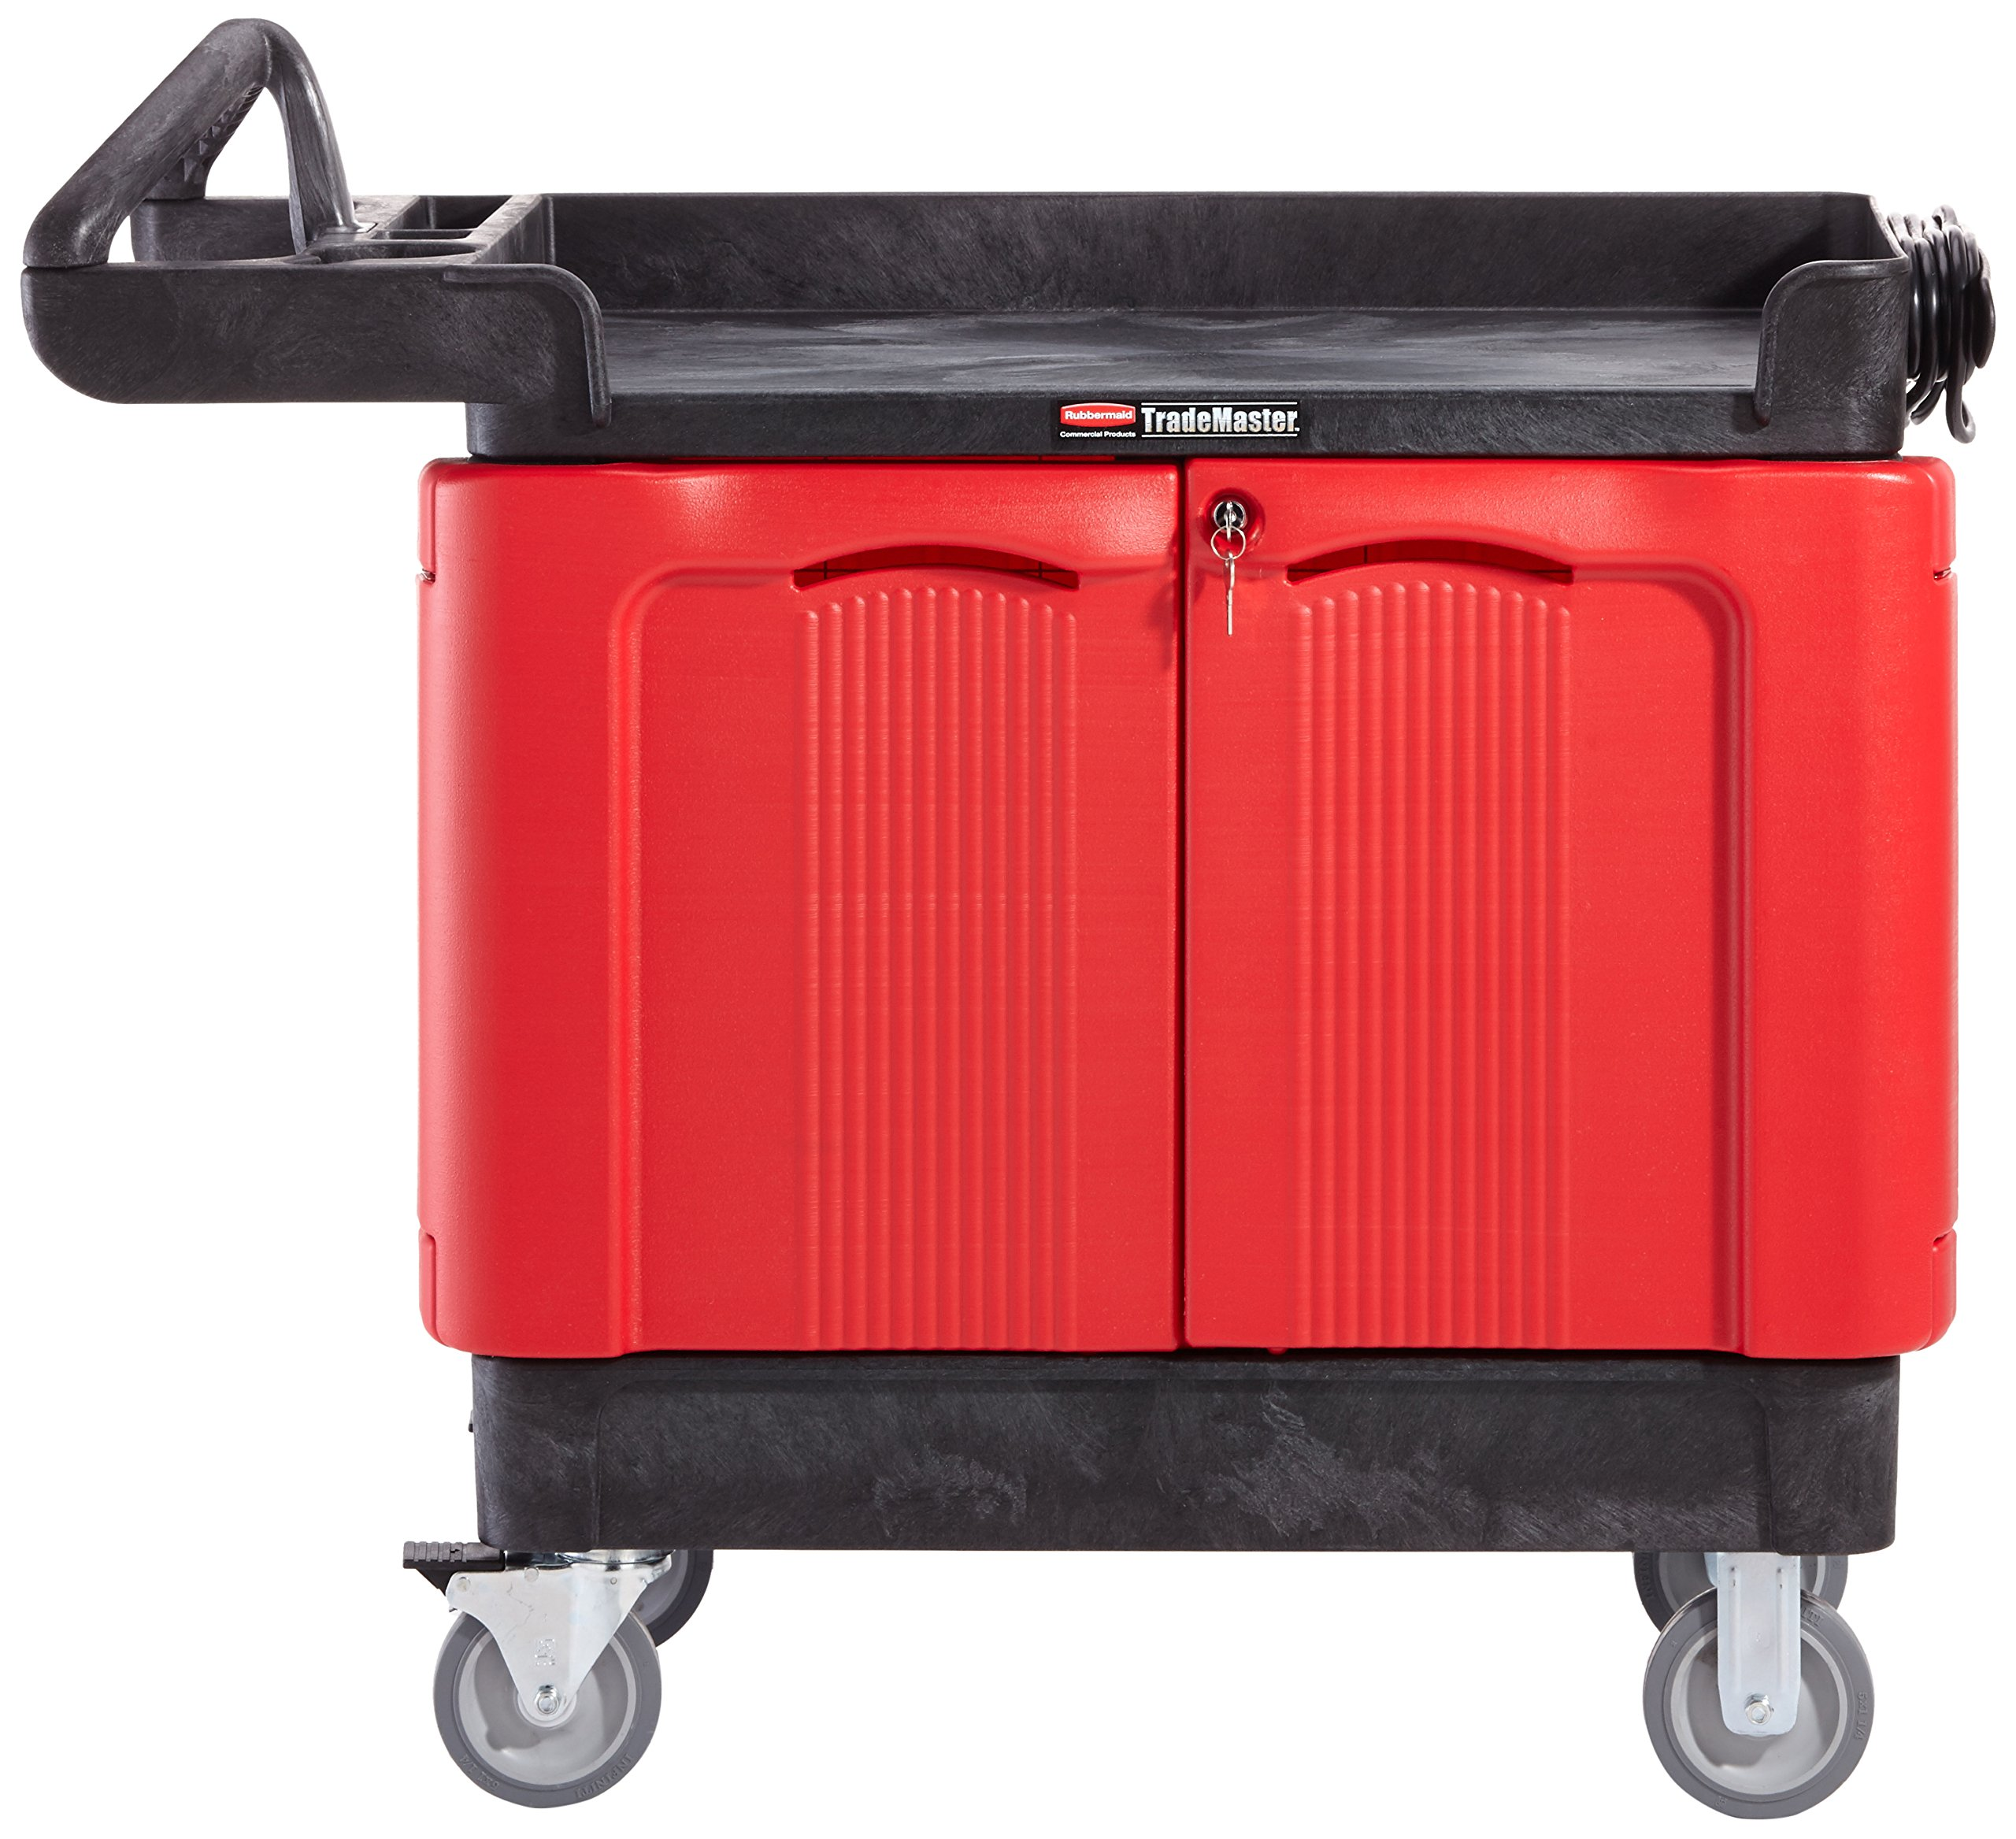 Rubbermaid Commercial TradeMaster Cart with Cabinet, 38'' L x 42'' W x 18'' H, Black/Red (FG451288BLA)